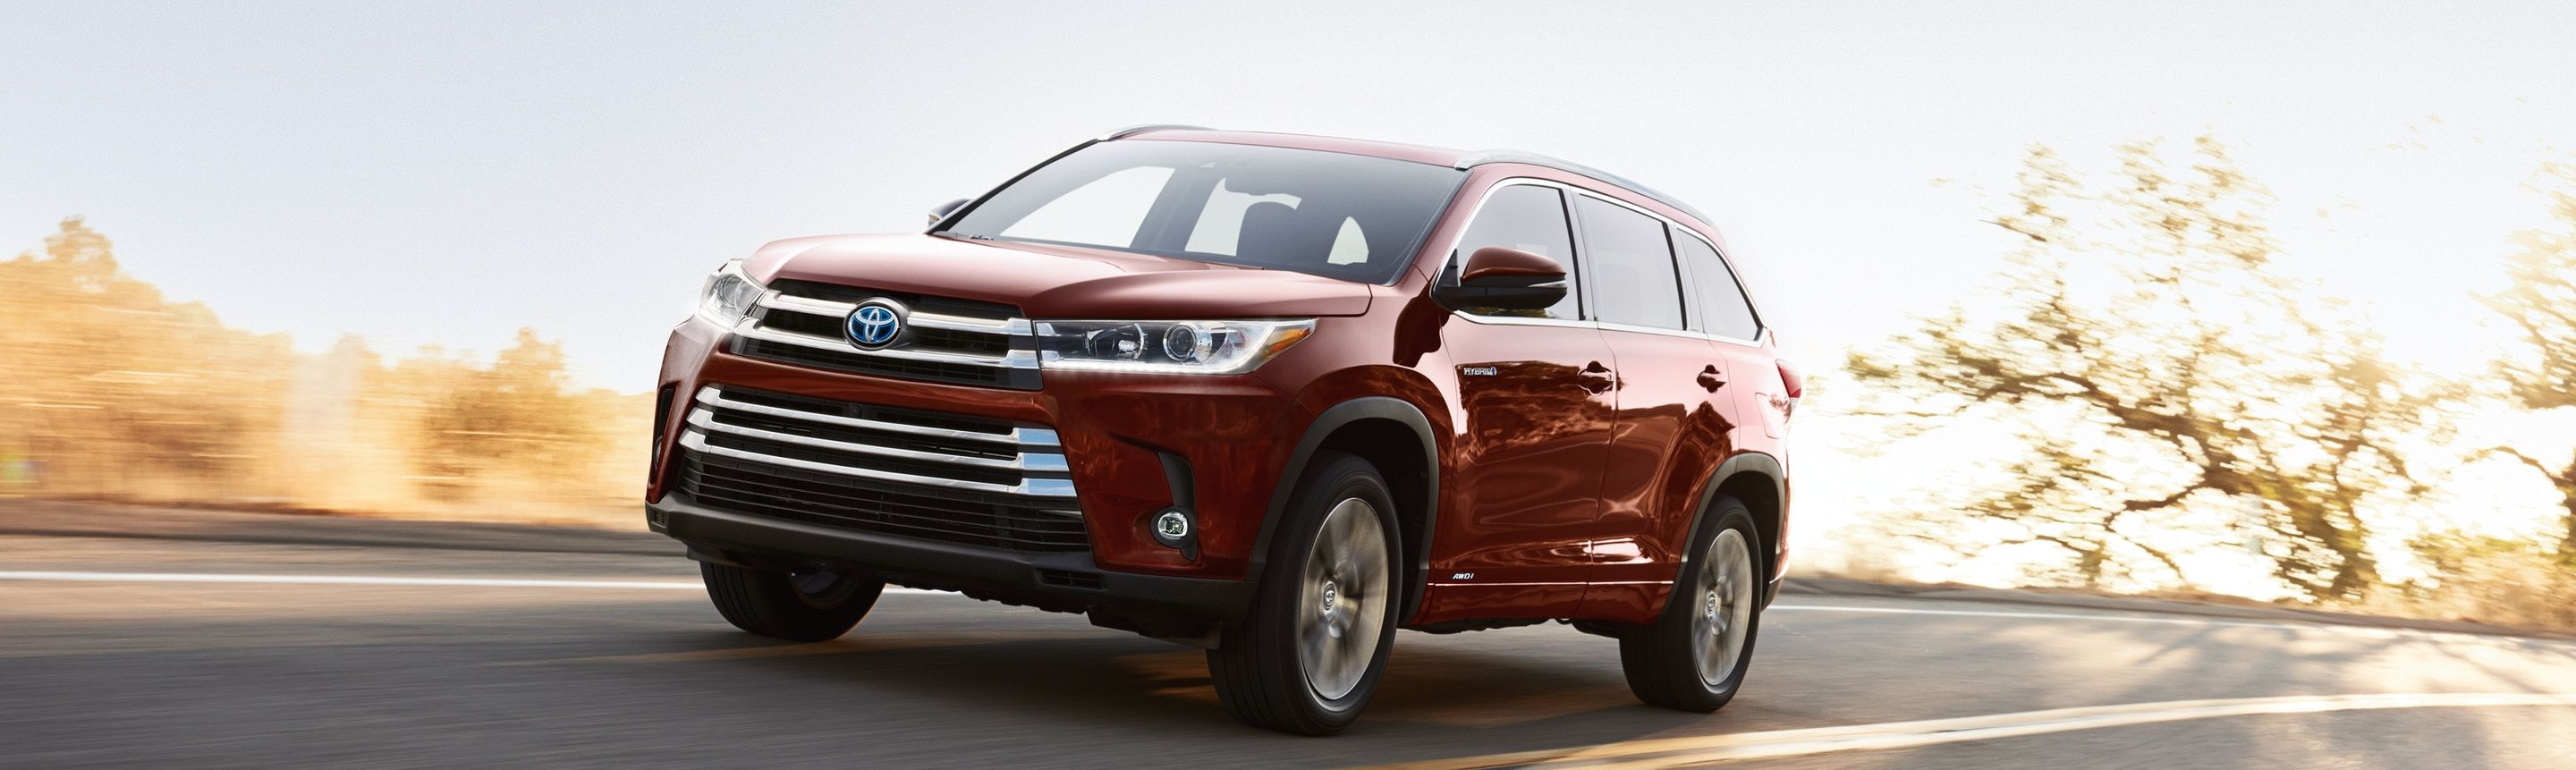 2019 Toyota Highlander for Sale near Ypsilanti, MI